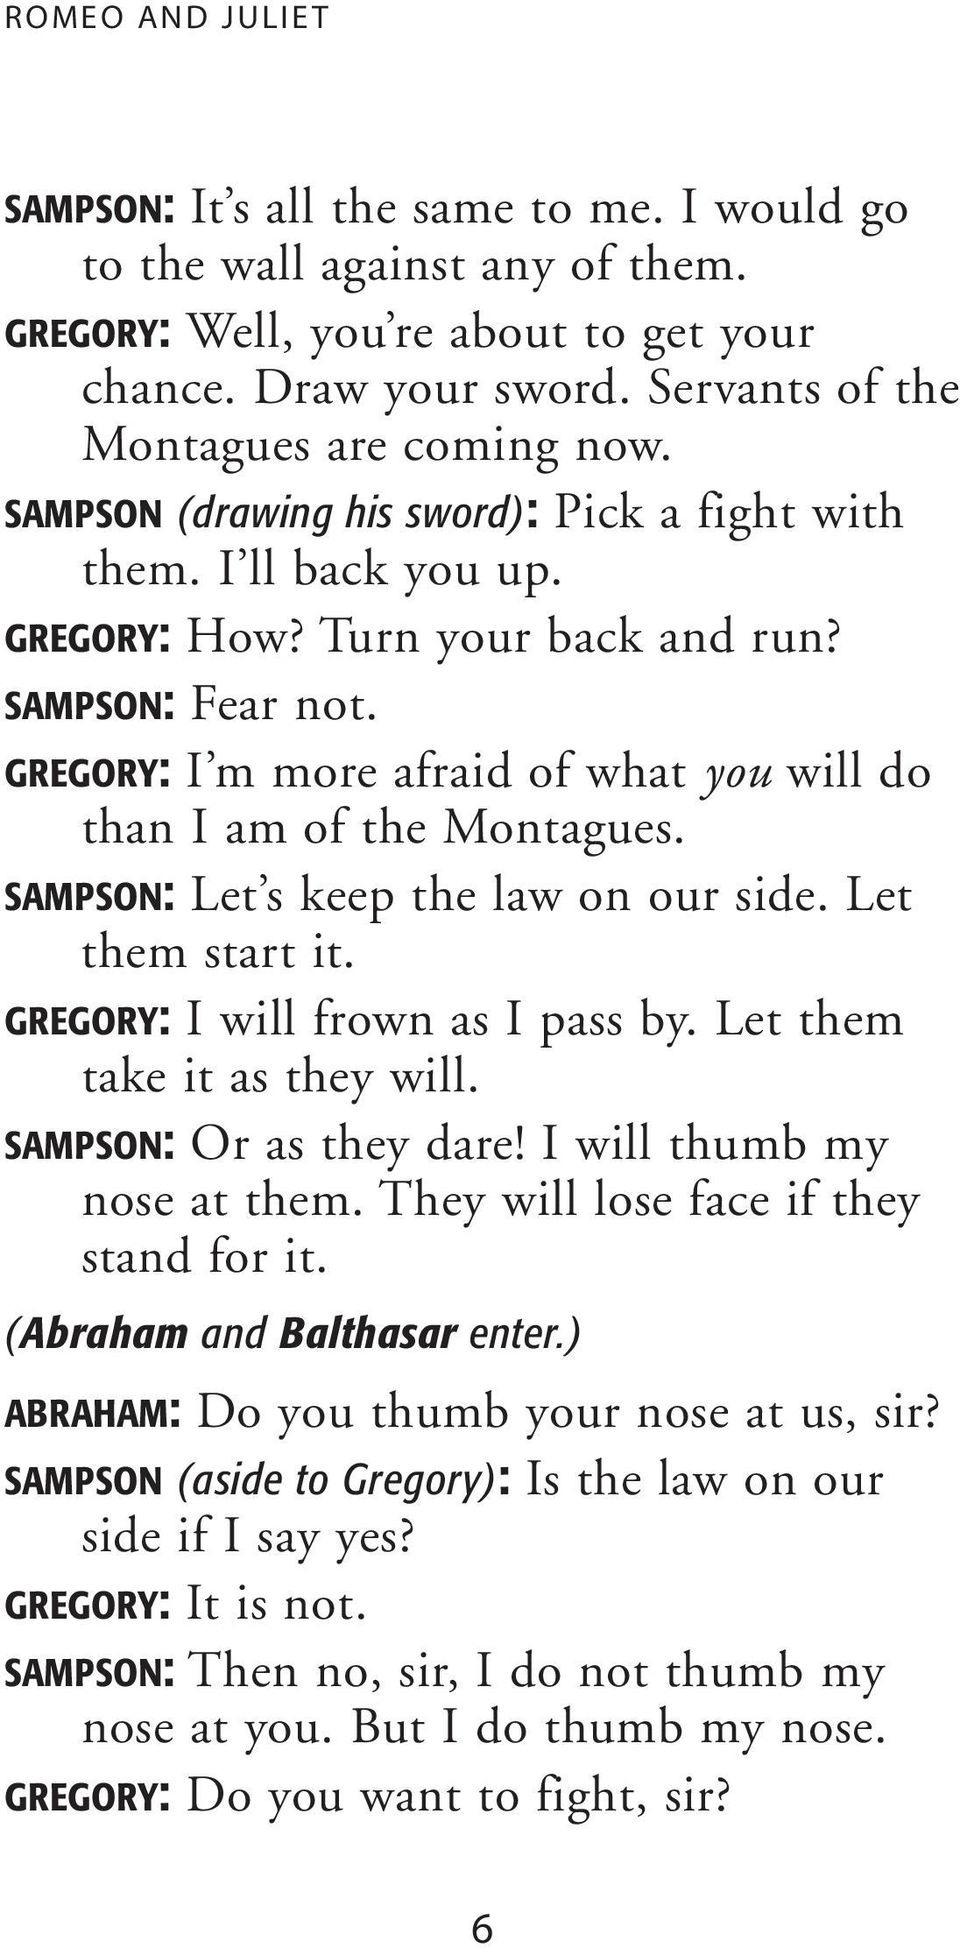 GREGORY: I m more afraid of what you will do than I am of the Montagues. SAMPSON: Let s keep the law on our side. Let them start it. GREGORY: I will frown as I pass by. Let them take it as they will.